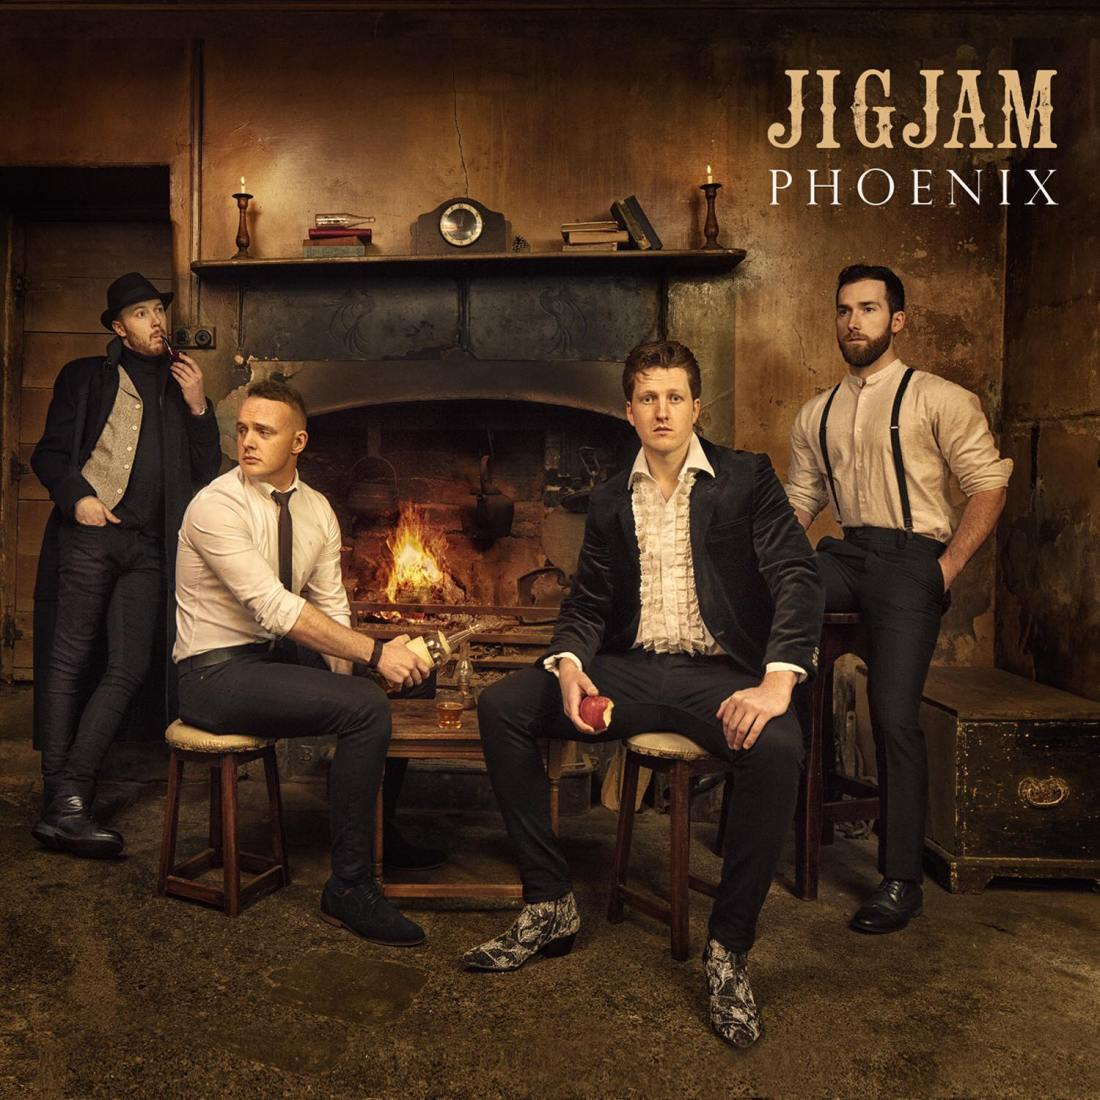 JigJam's latest collection,PHOENIX, the Best Americana Album winner at the Independent Music Awards.